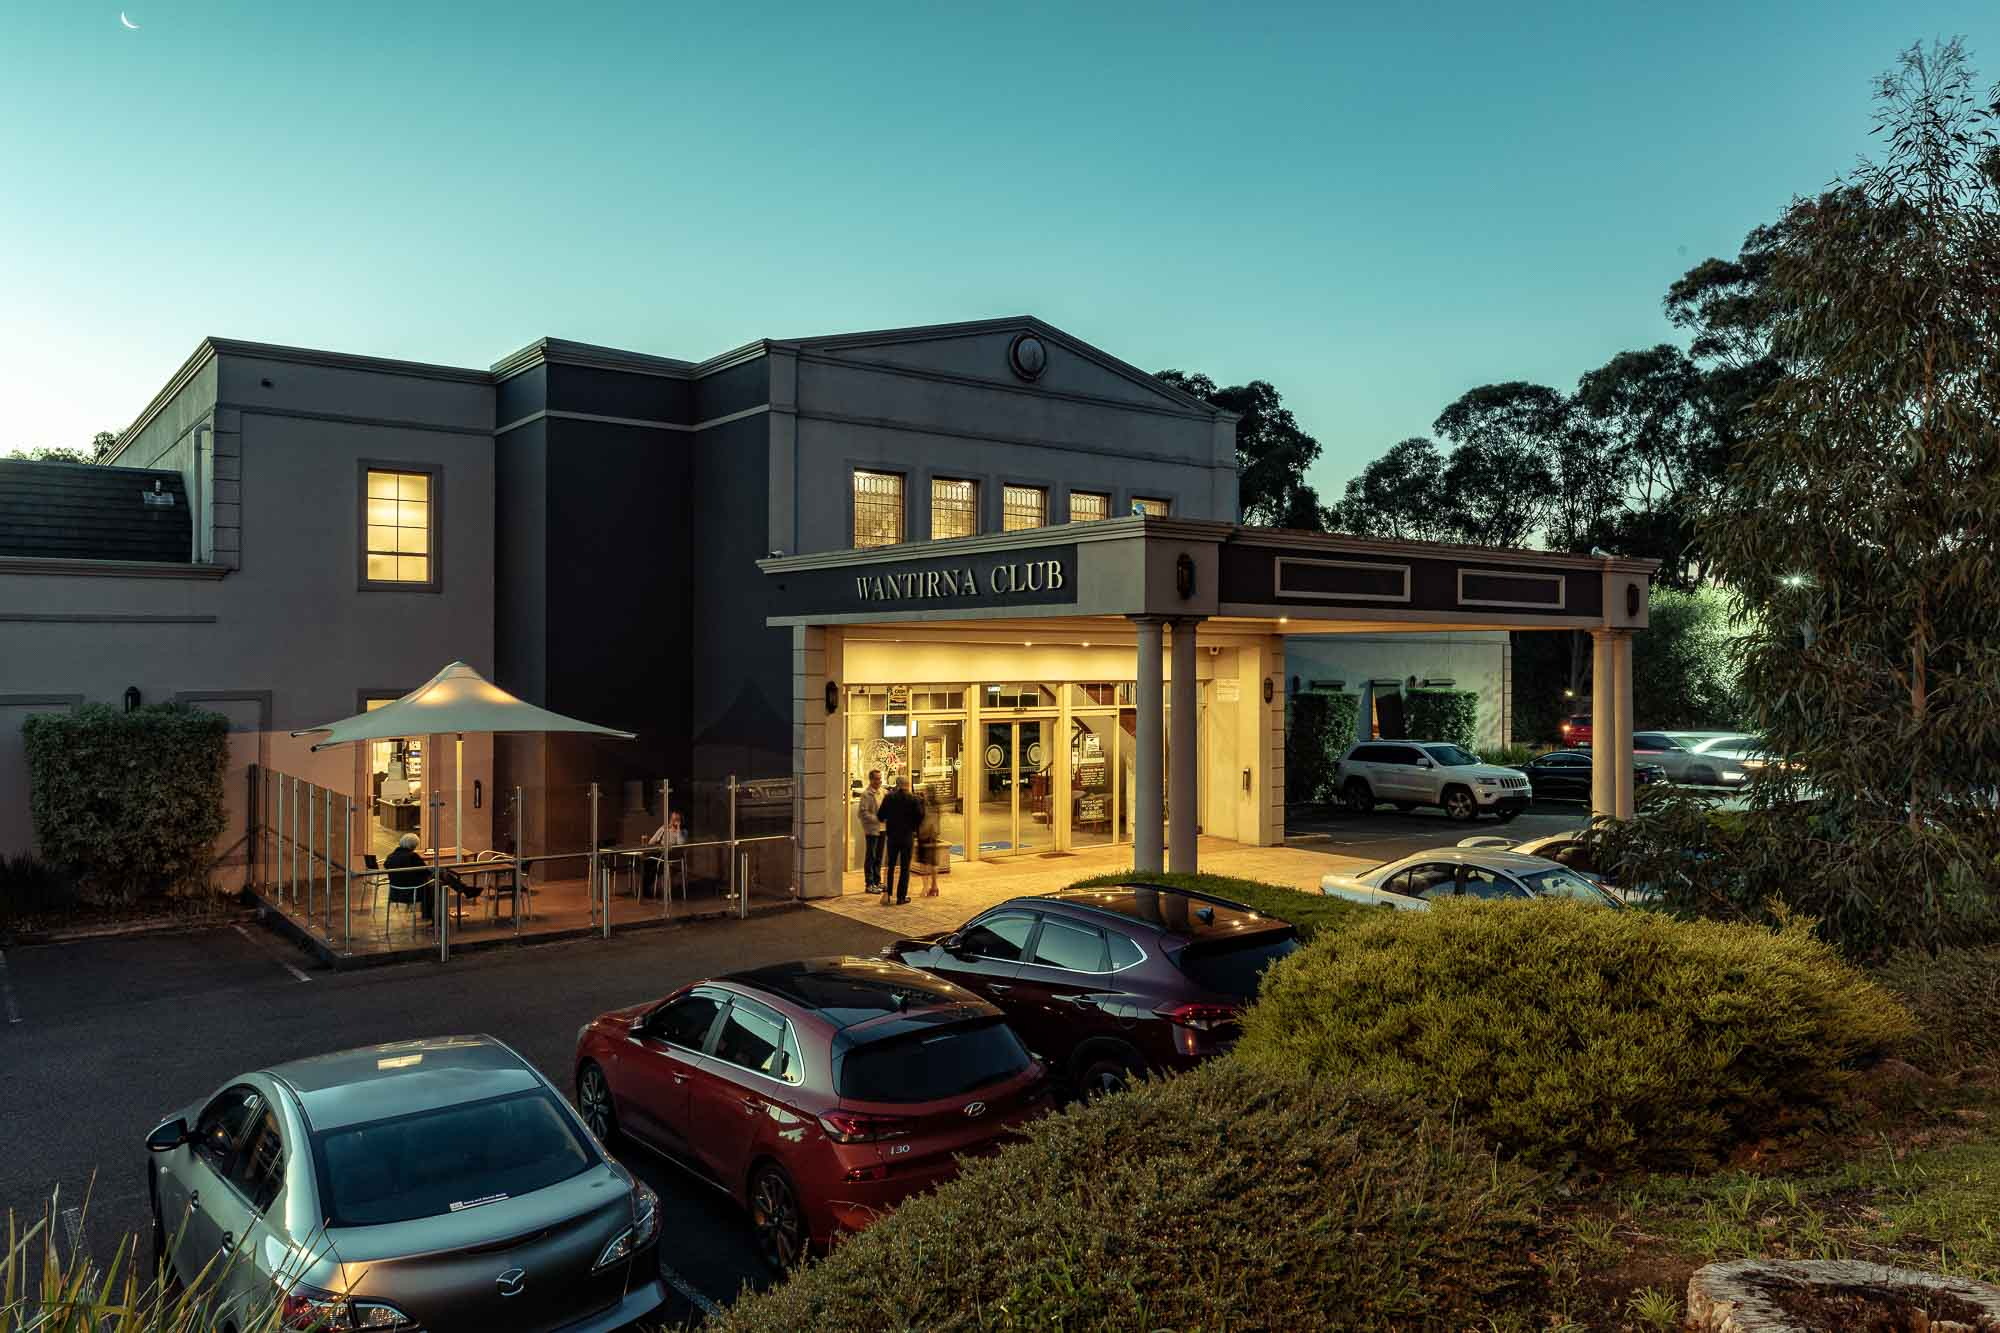 Commercial photography sample - Wantirna Club front of building left side early night